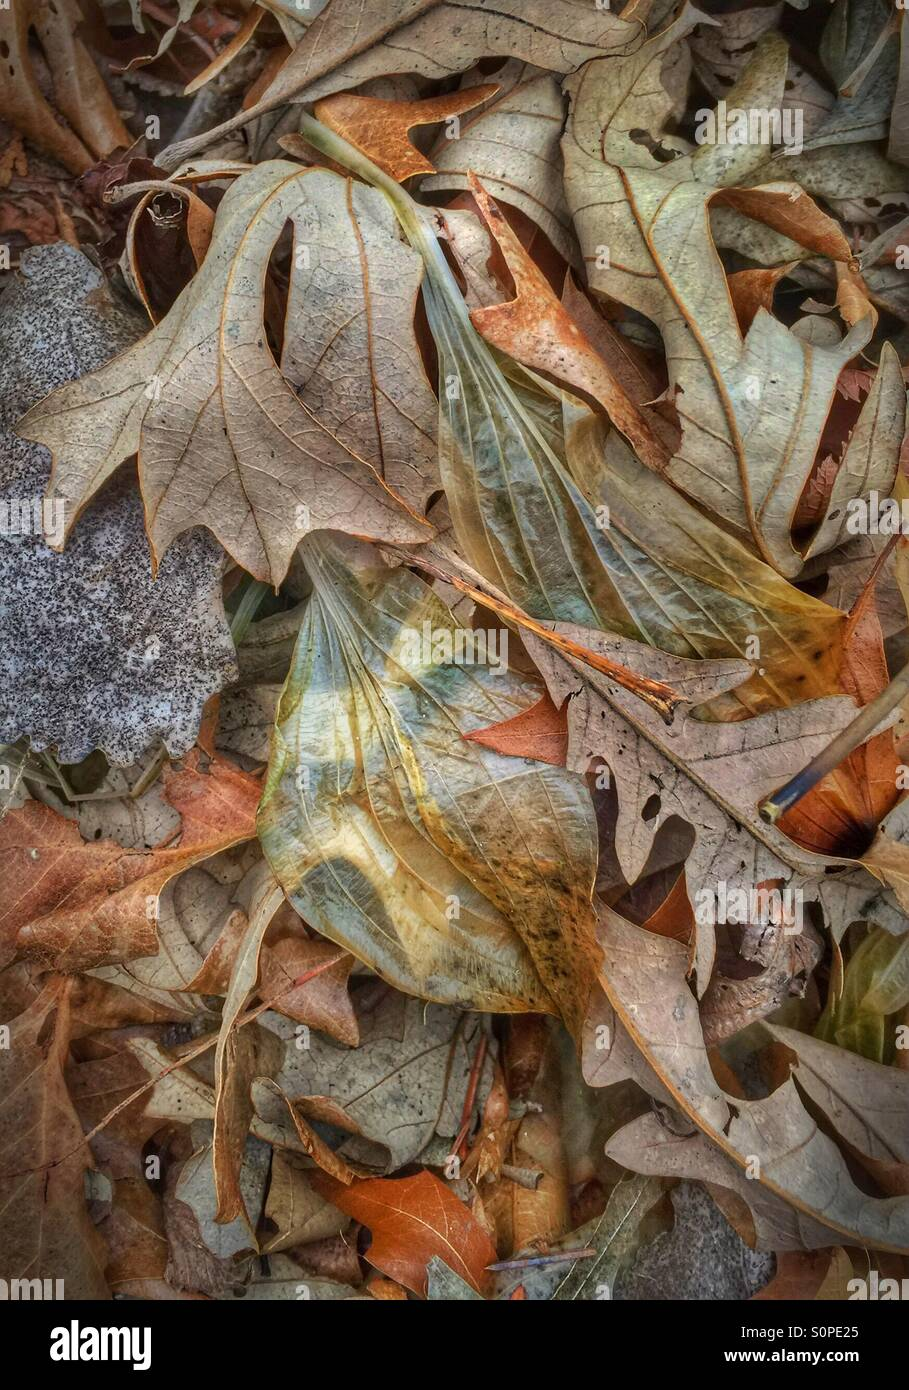 Decaying leaves in winter, including those of Hosta Royal Standard which at this stage in their decomposing are - Stock Image